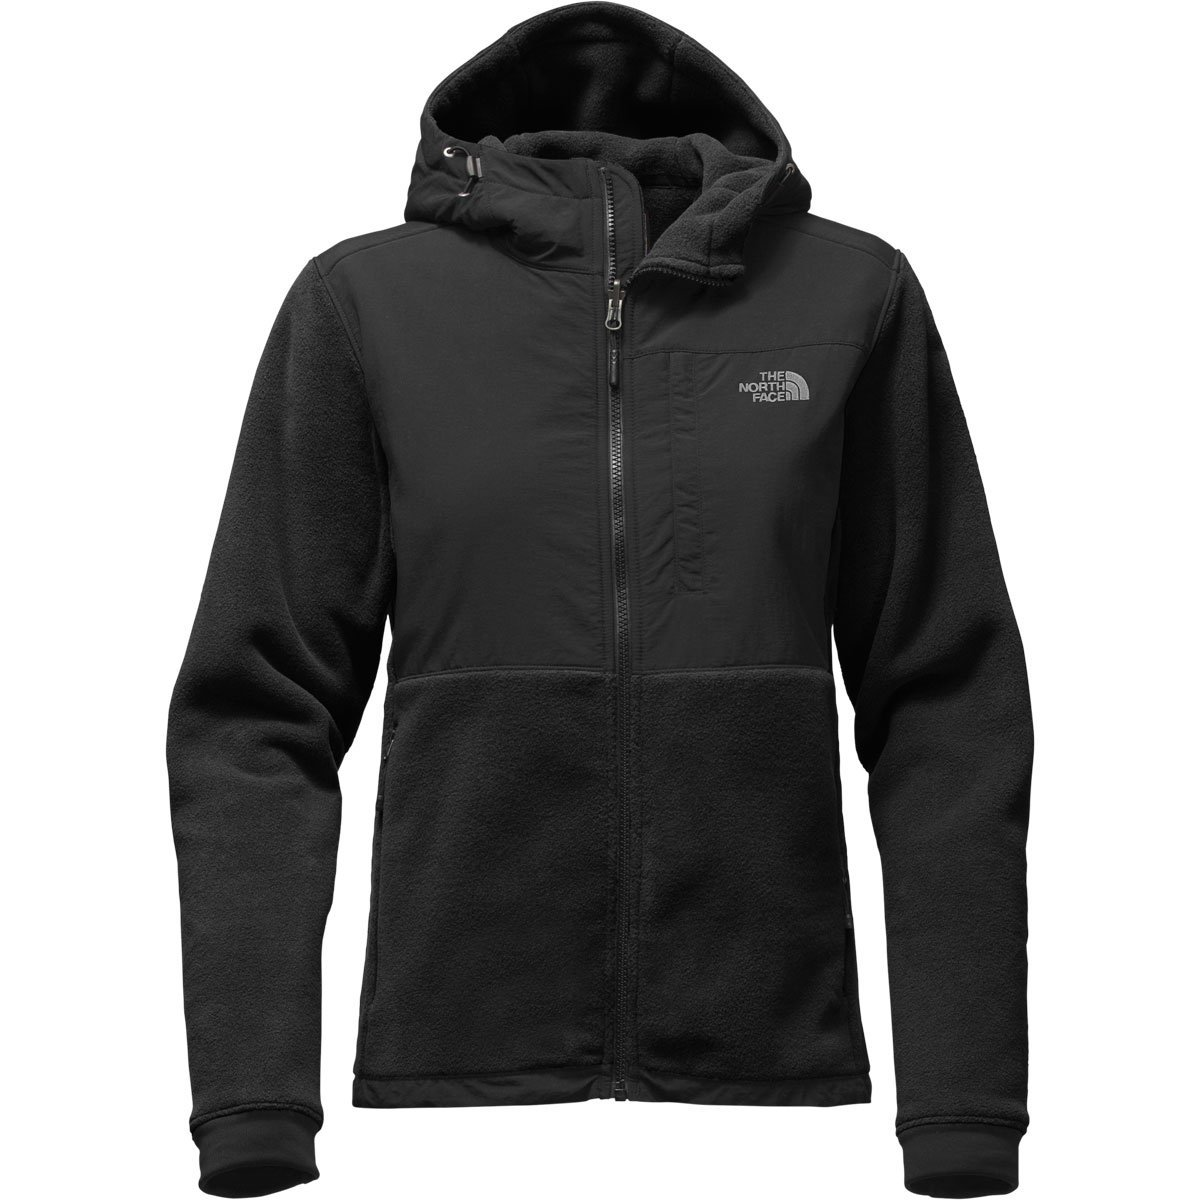 R Tnf Black XSmall The North Face Denali Hoodie Women's